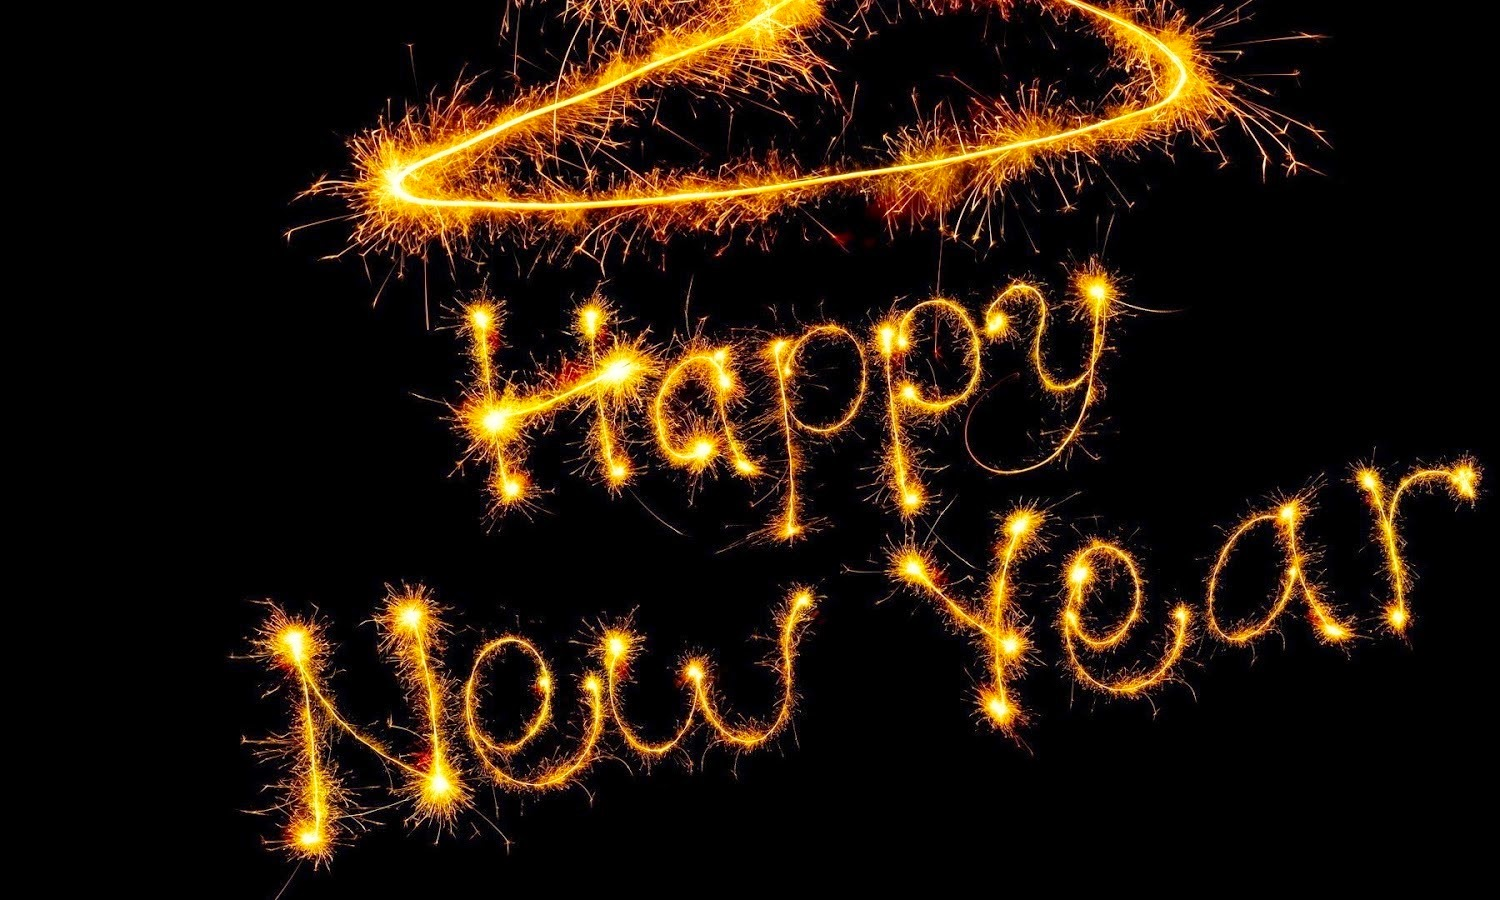 Happy new year 2016 HD wallpaper desktop fb cover pic high resolutions images pictures photo celebration